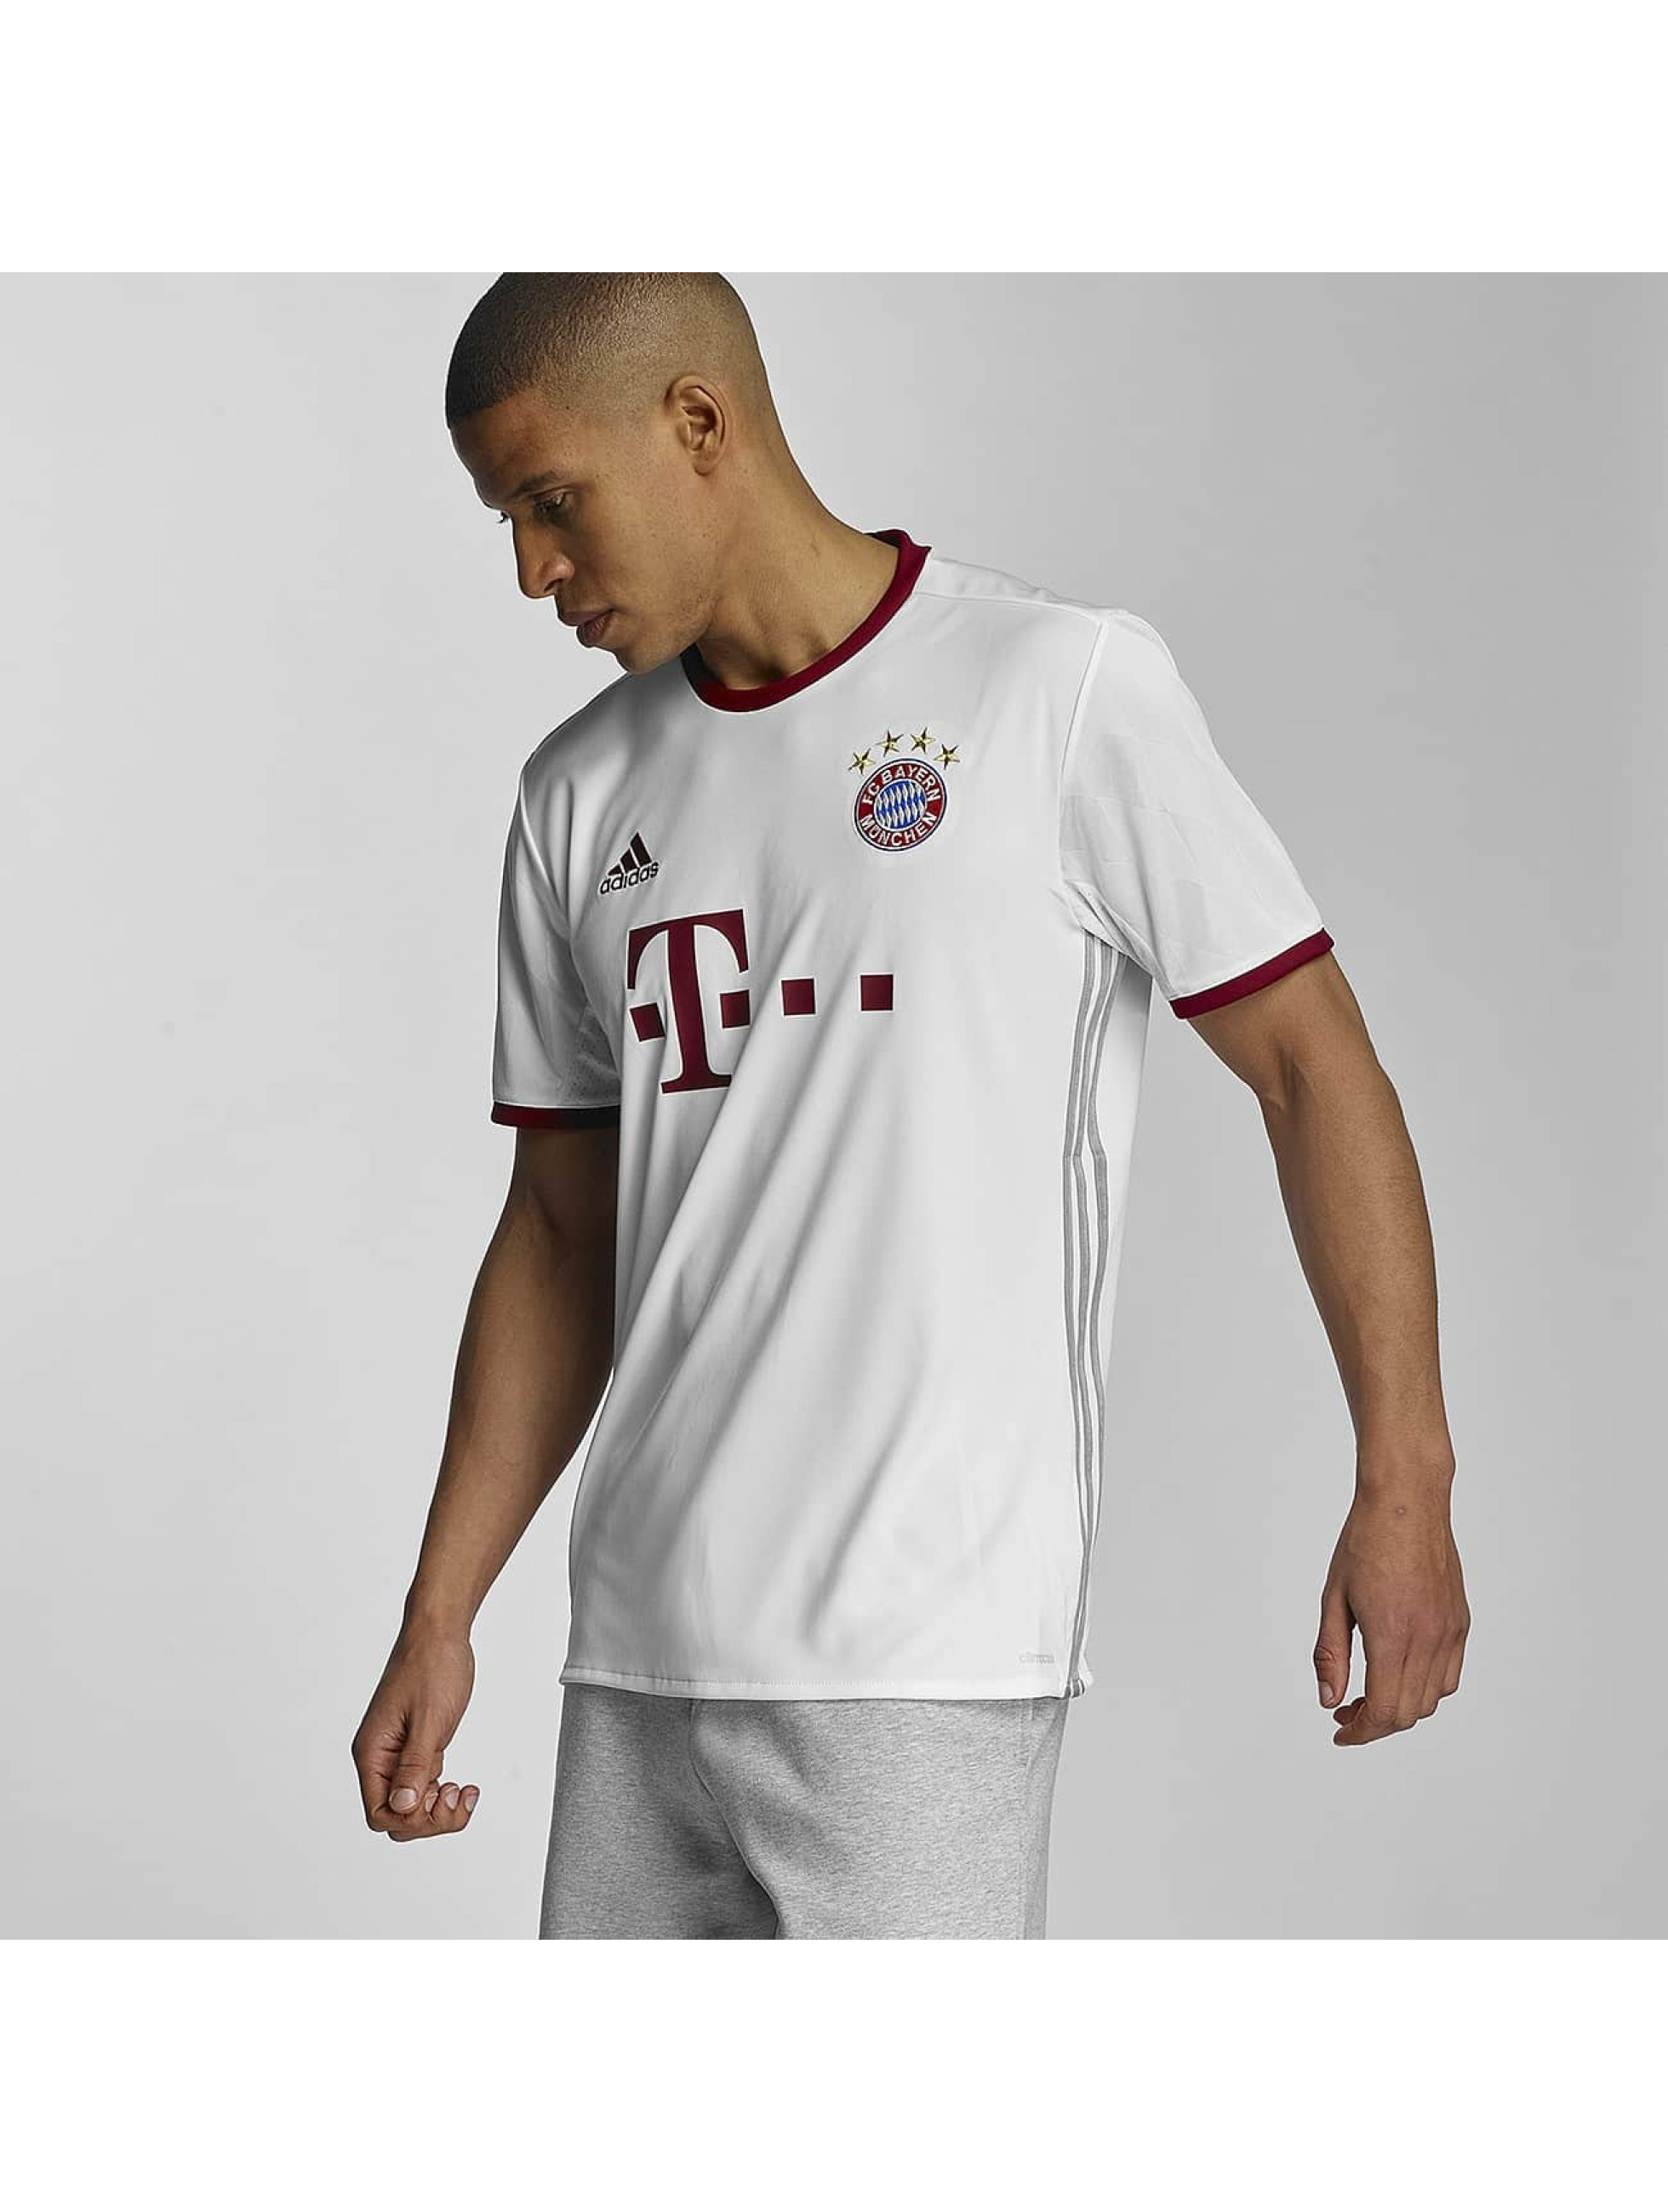 adidas / Jersey FC Bayern München UCL in white